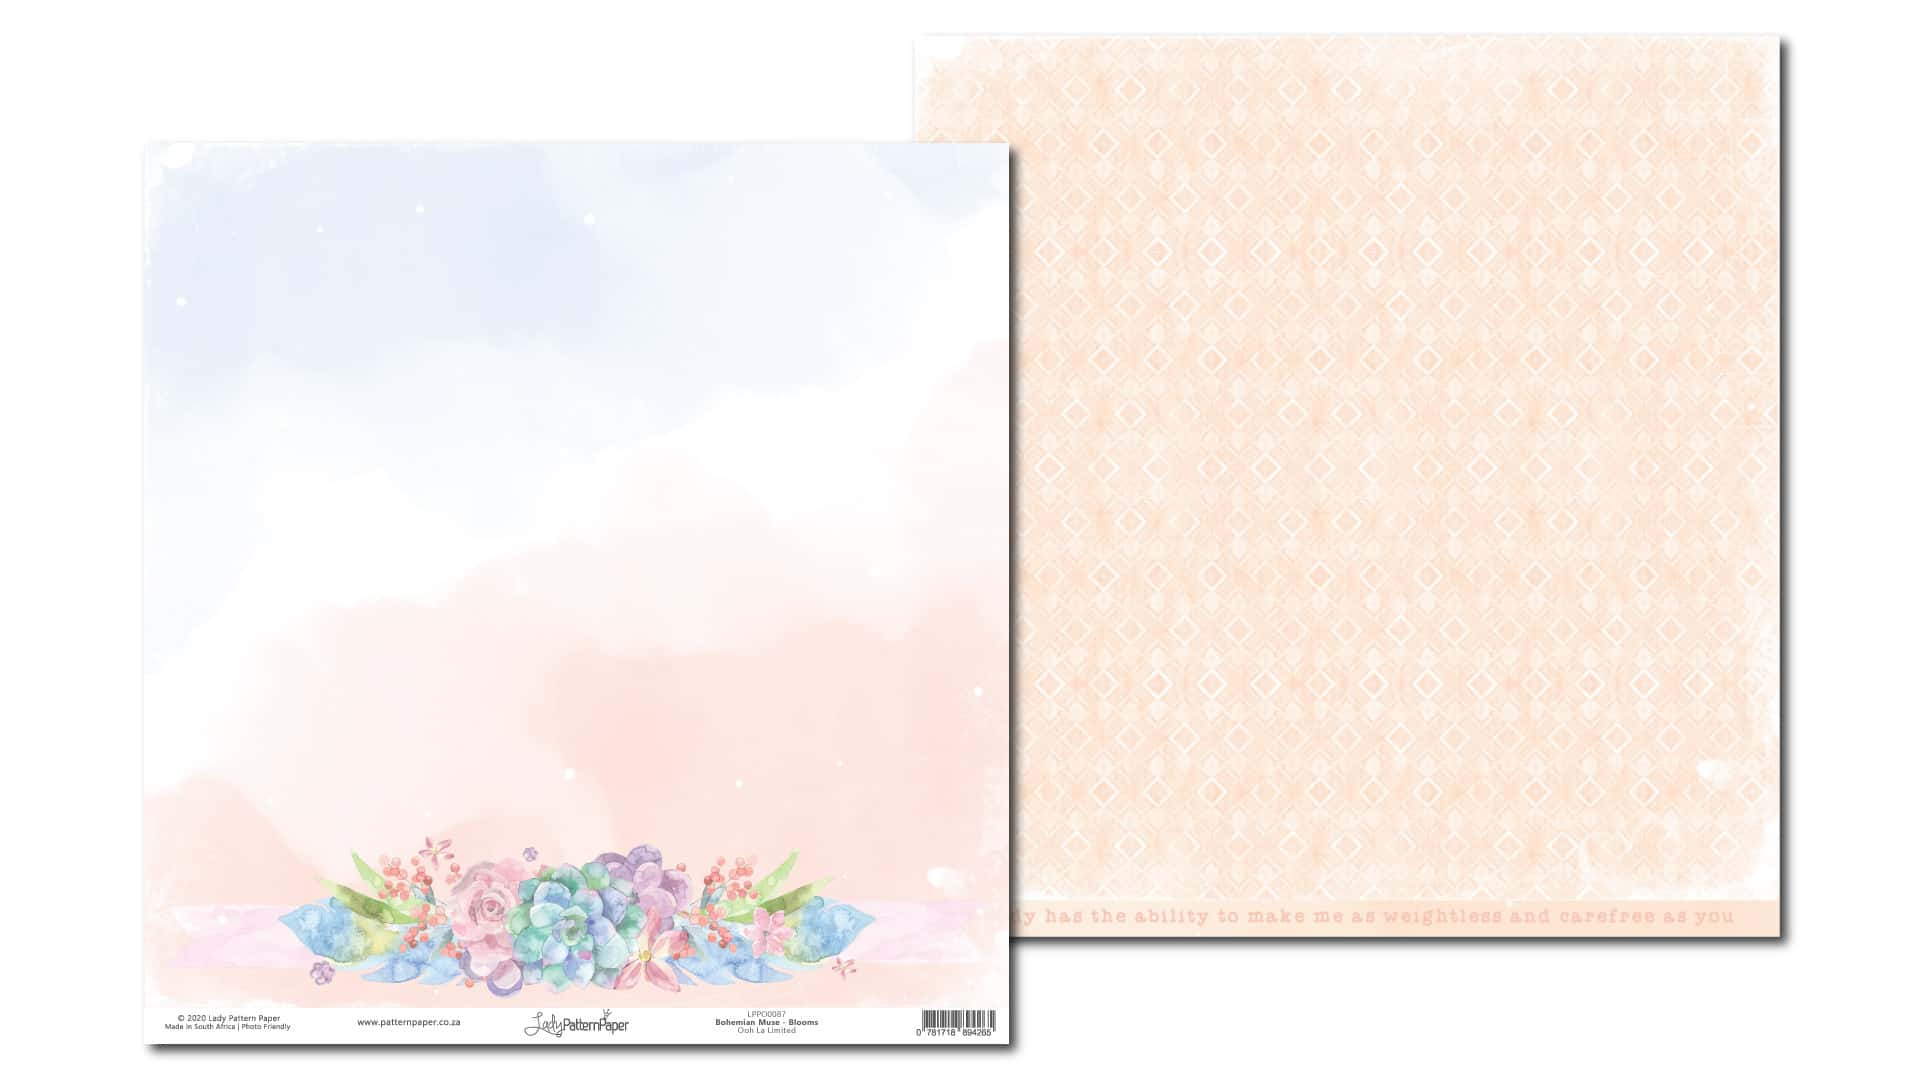 LPPO0087 - Bohemian Muse - Blooms